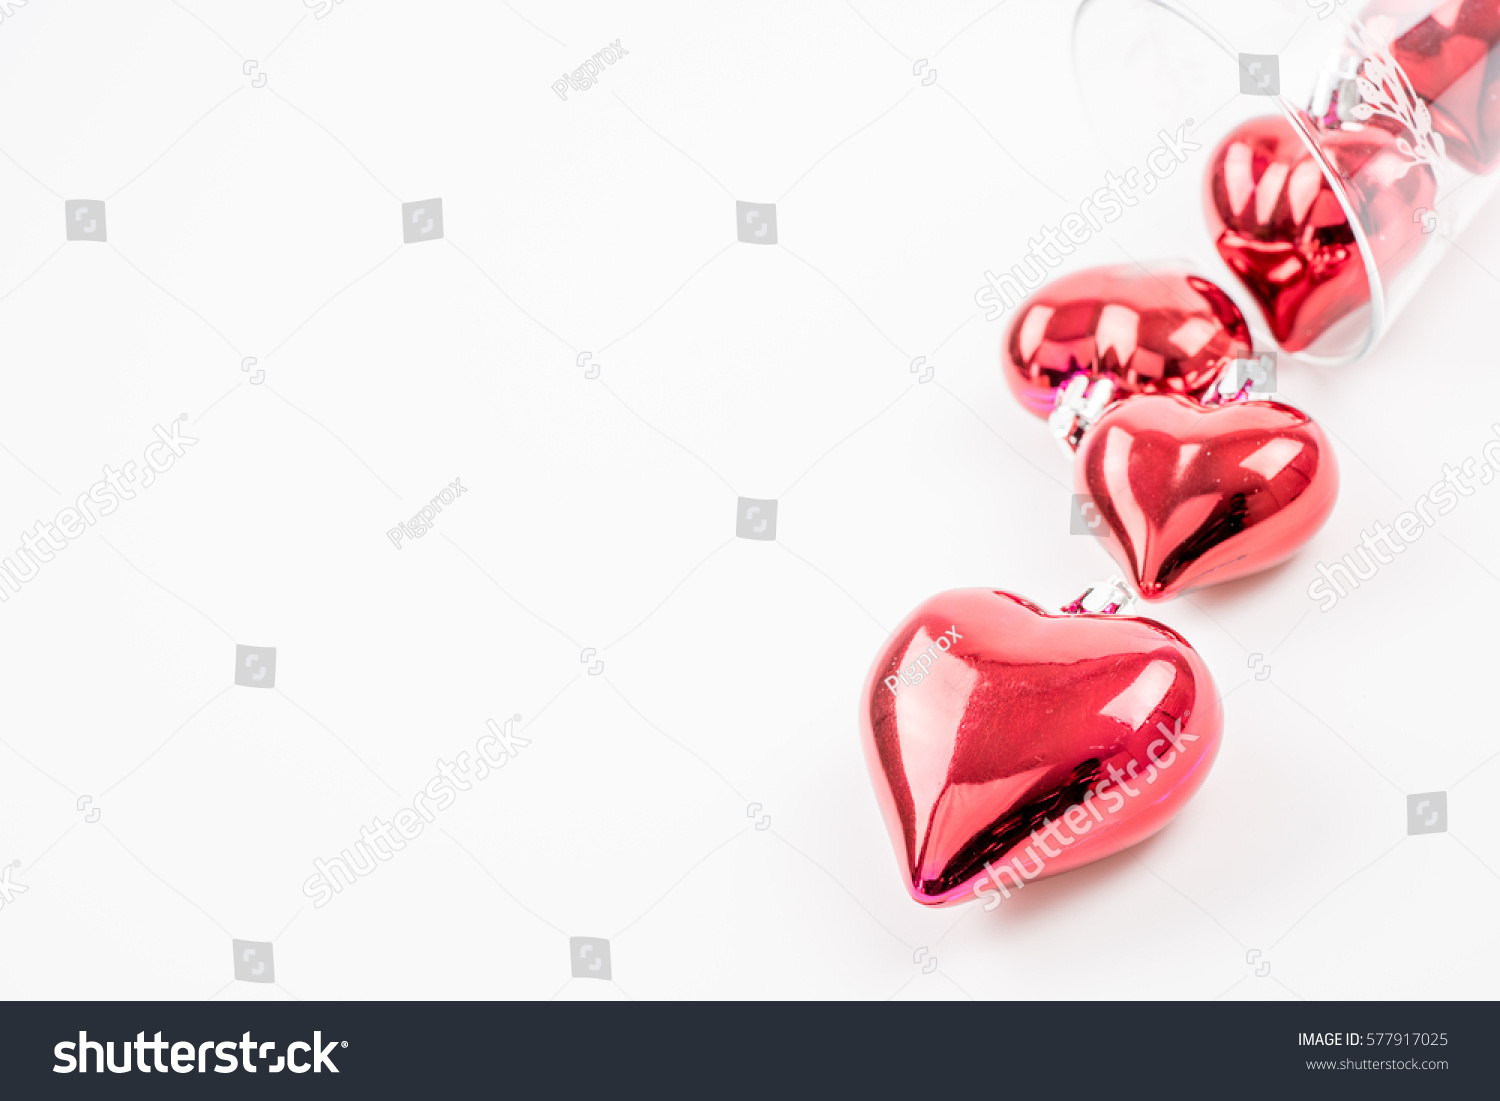 Red Heart Shapes Love Concept Valentines Stock Photo